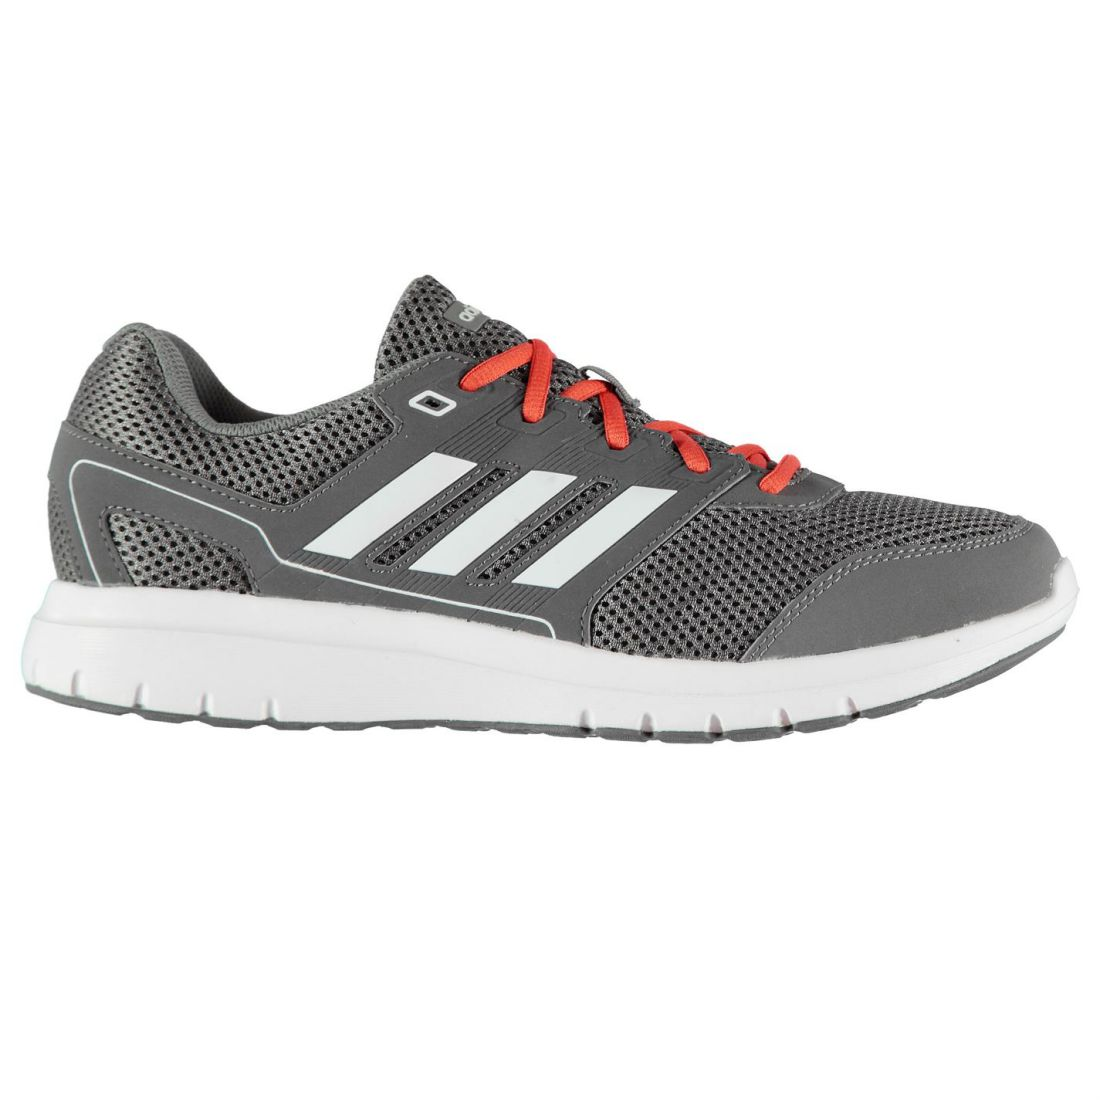 buy online 13bb2 58354 adidas Duramo Lite 2 Sneakers Mens Gents Runners Laces Fastened Ventilated  Mesh 4 4 sur 5 ...